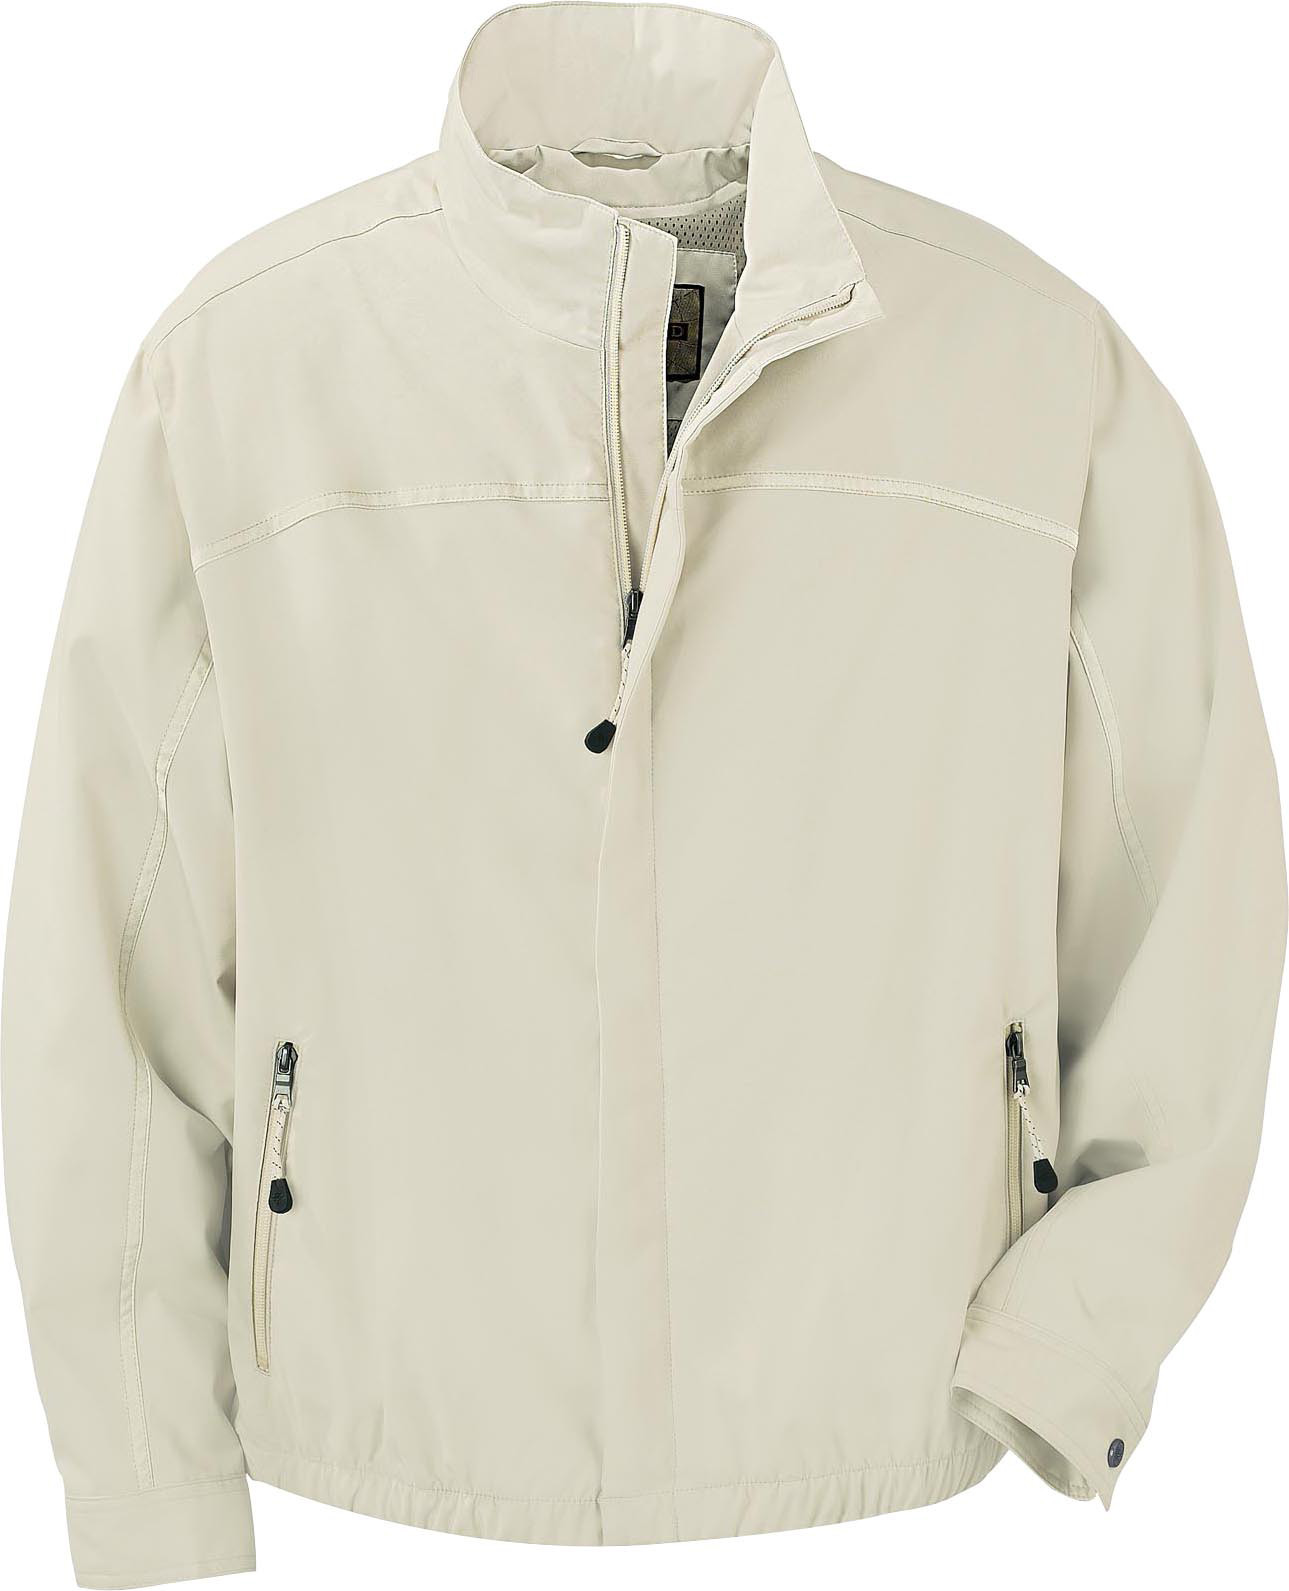 Ash City Lightweight 88103 - Men's Micro Twill Bomber ...